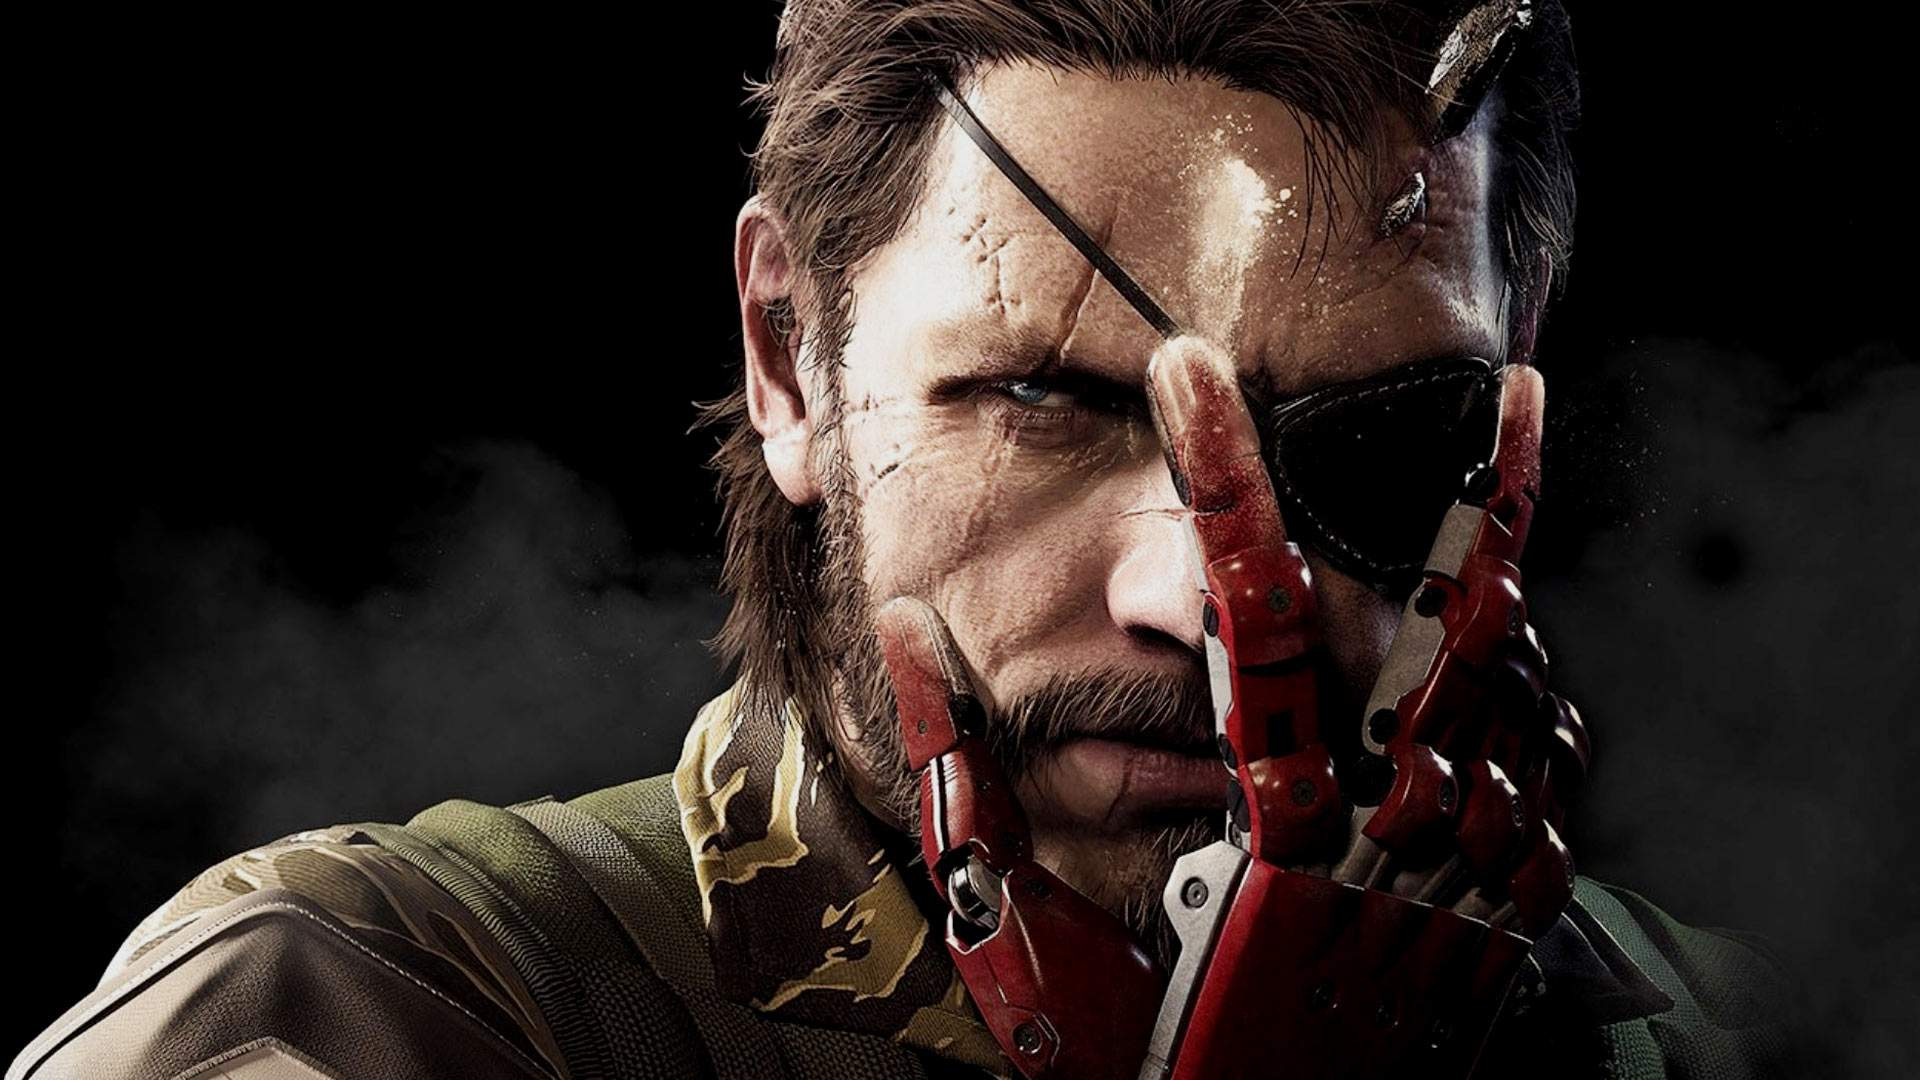 Metal Gear Solid V: The Phantom Pain widescreen